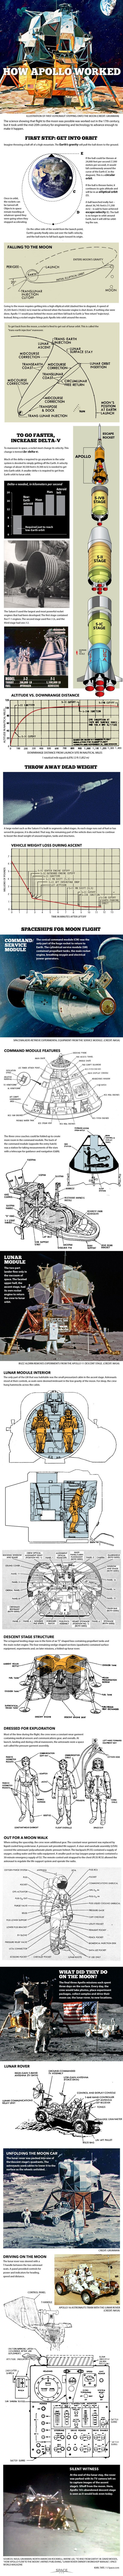 Diagrams and NASA artwork show how Apollo astronauts flew to the moon.